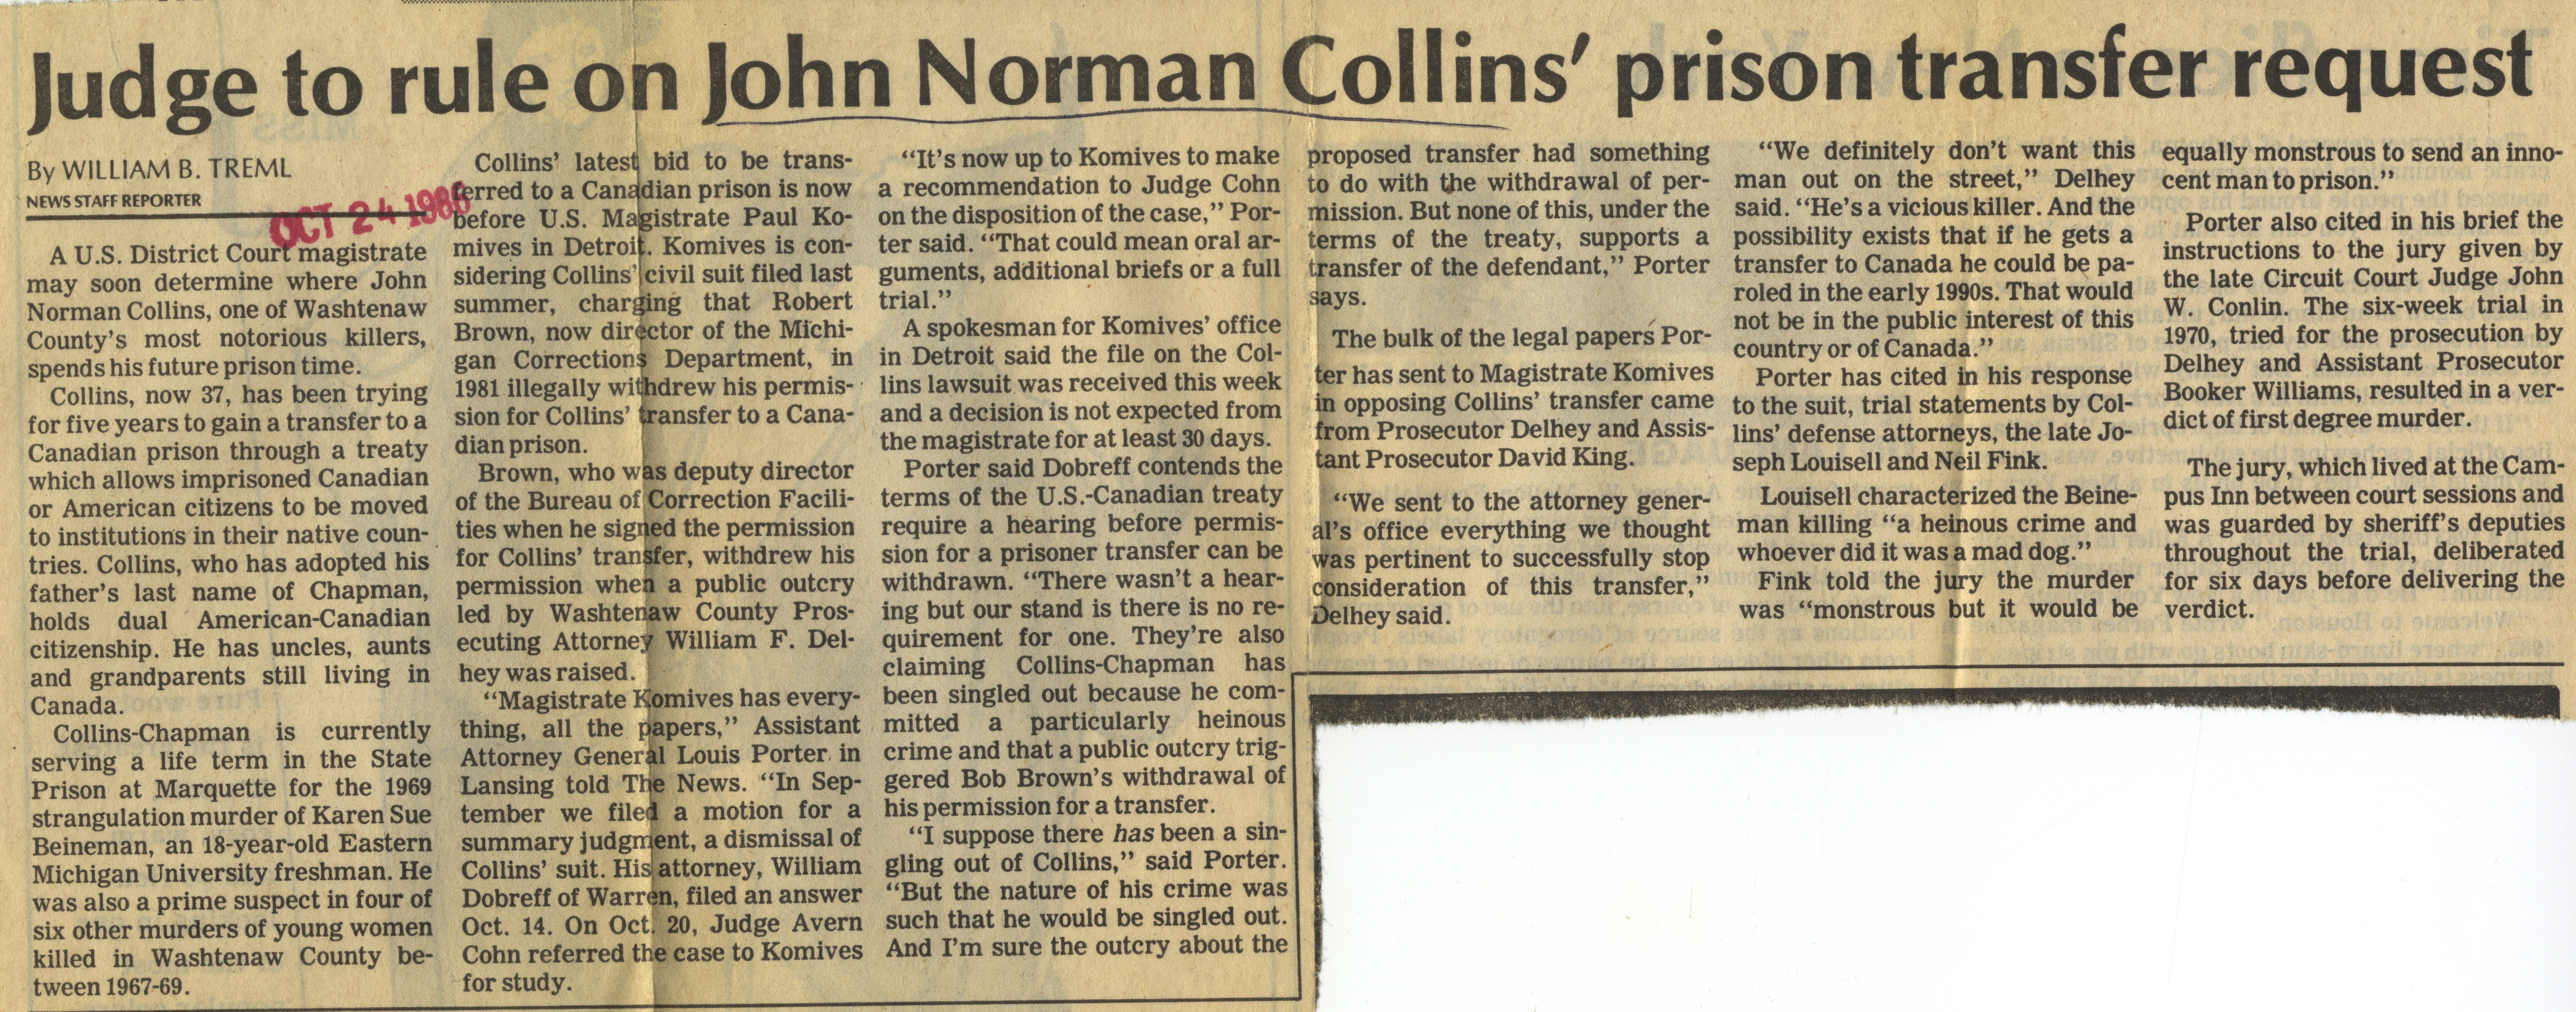 Judge to rule on John Norman Collins' prison tranfer request image